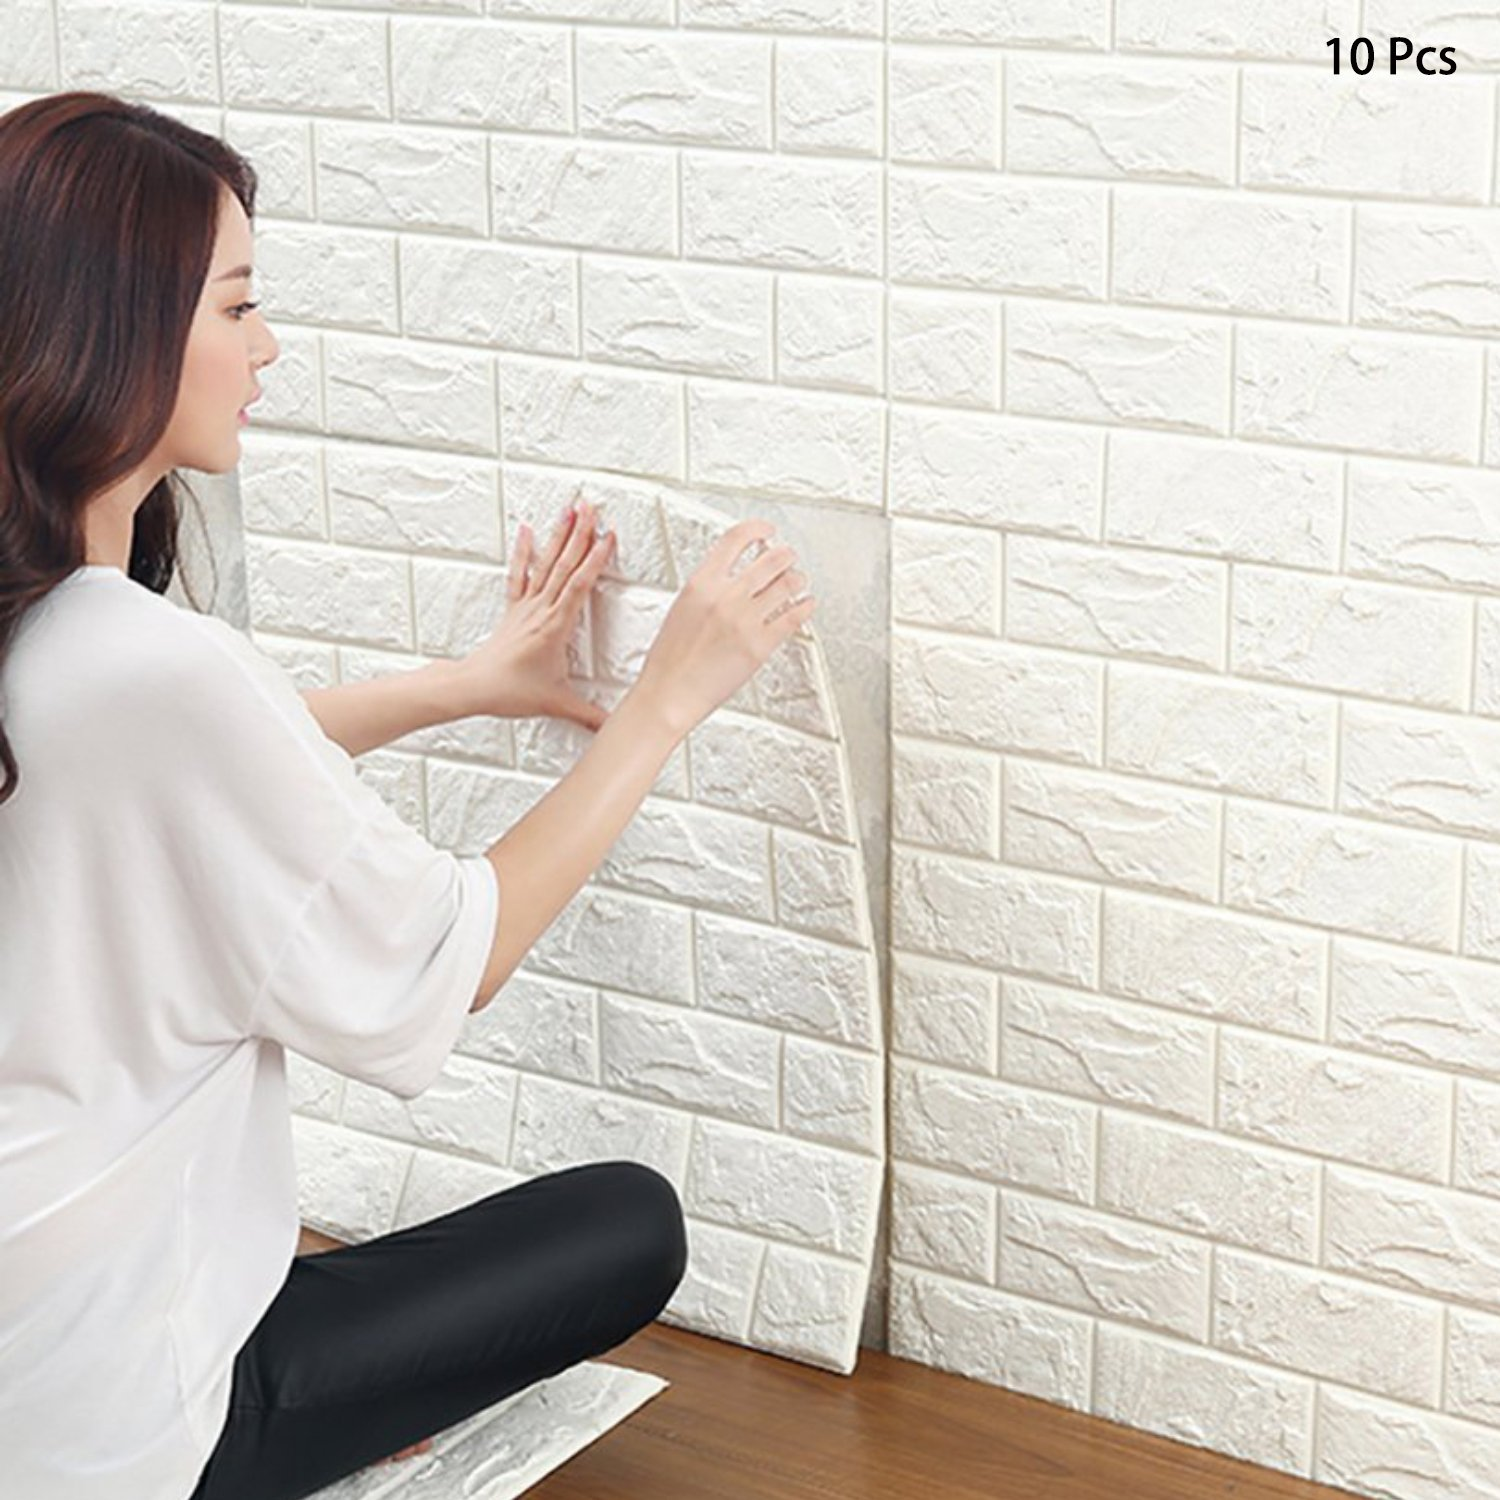 3D Brick Wallpaper, White Brick Pattern Wall Stickers, Self- Adhesive Wallpaper for Living Room Bedroom, 60 * 60CM by YTAT(10) YTAT IED